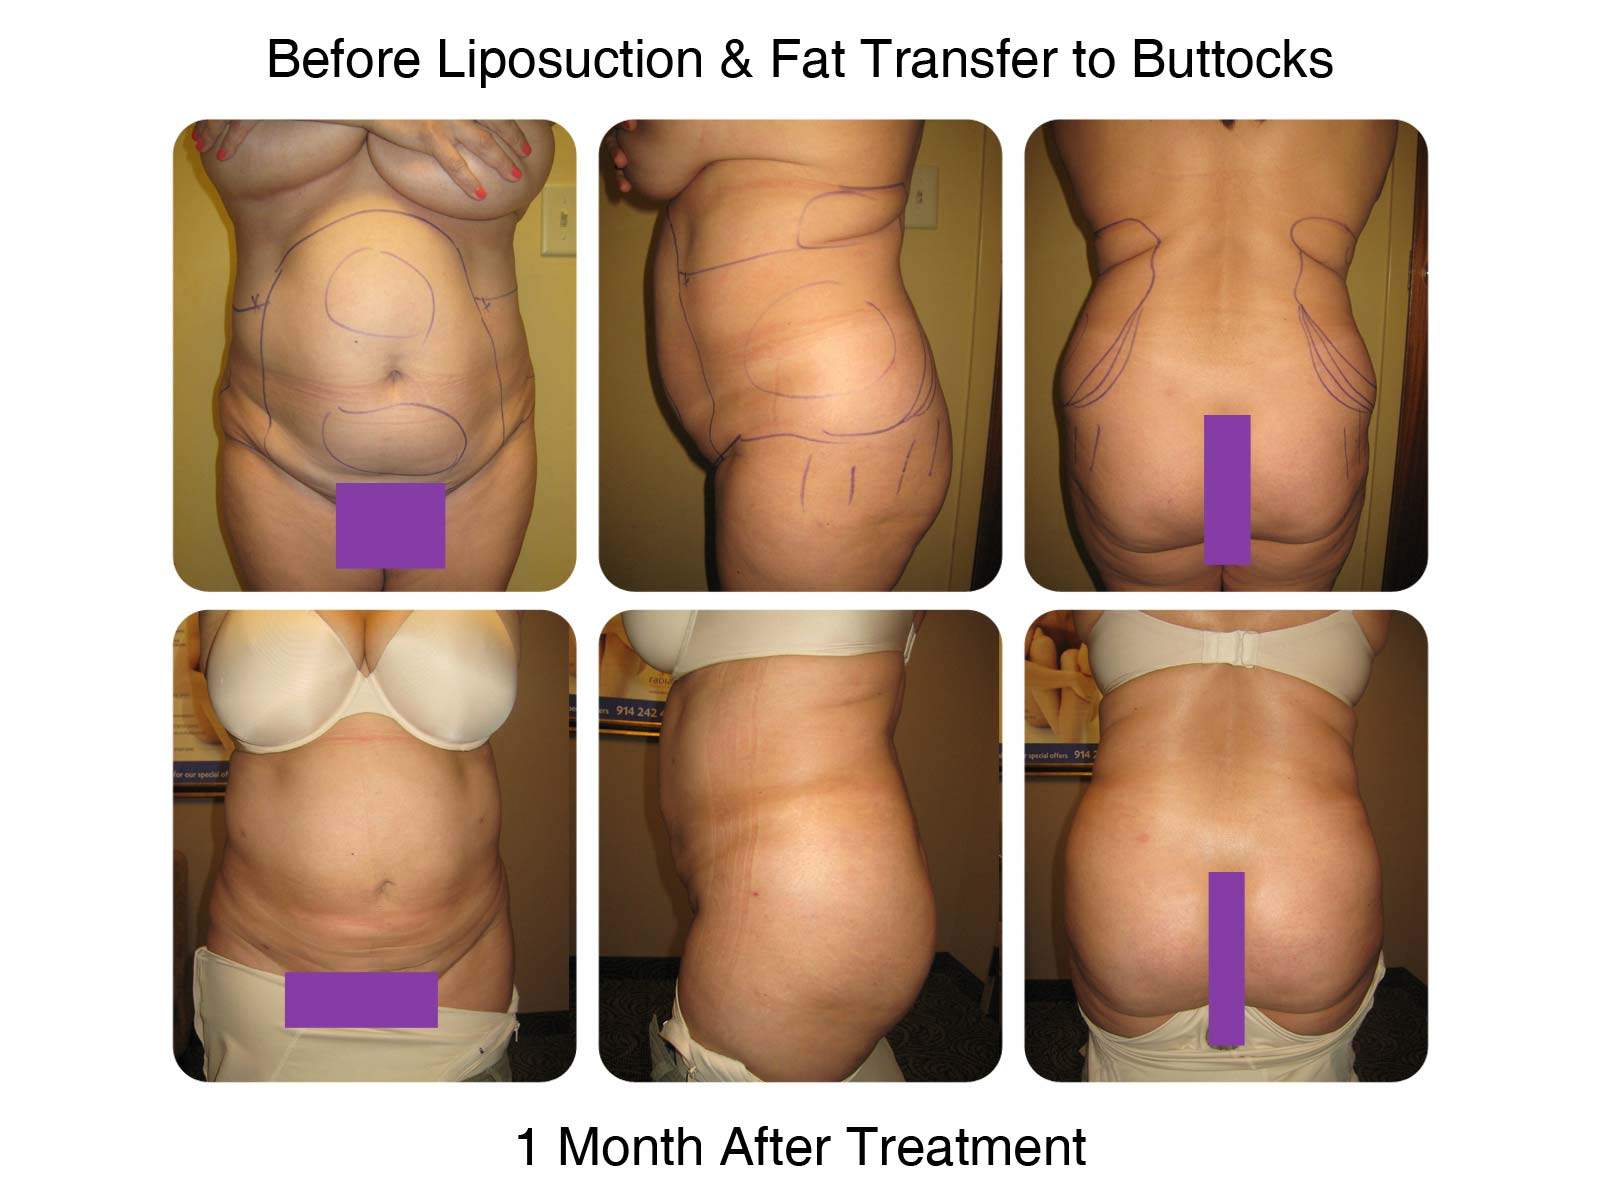 Brazilian Butt Lift Procedure - 1 Month After Treatment